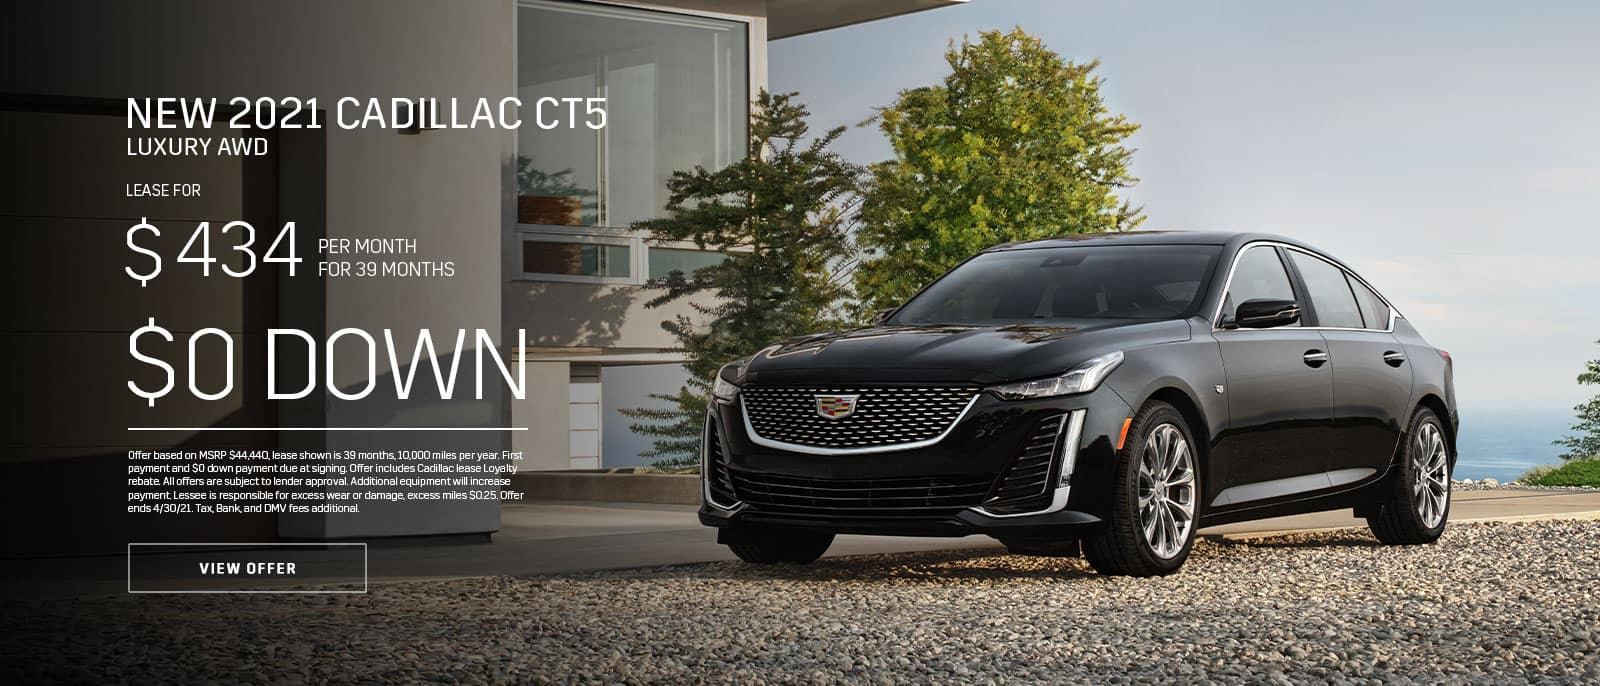 New 2021 Cadillac CT5 Lux AWD Subtext: $434/month for 39 months, $0 DOWN